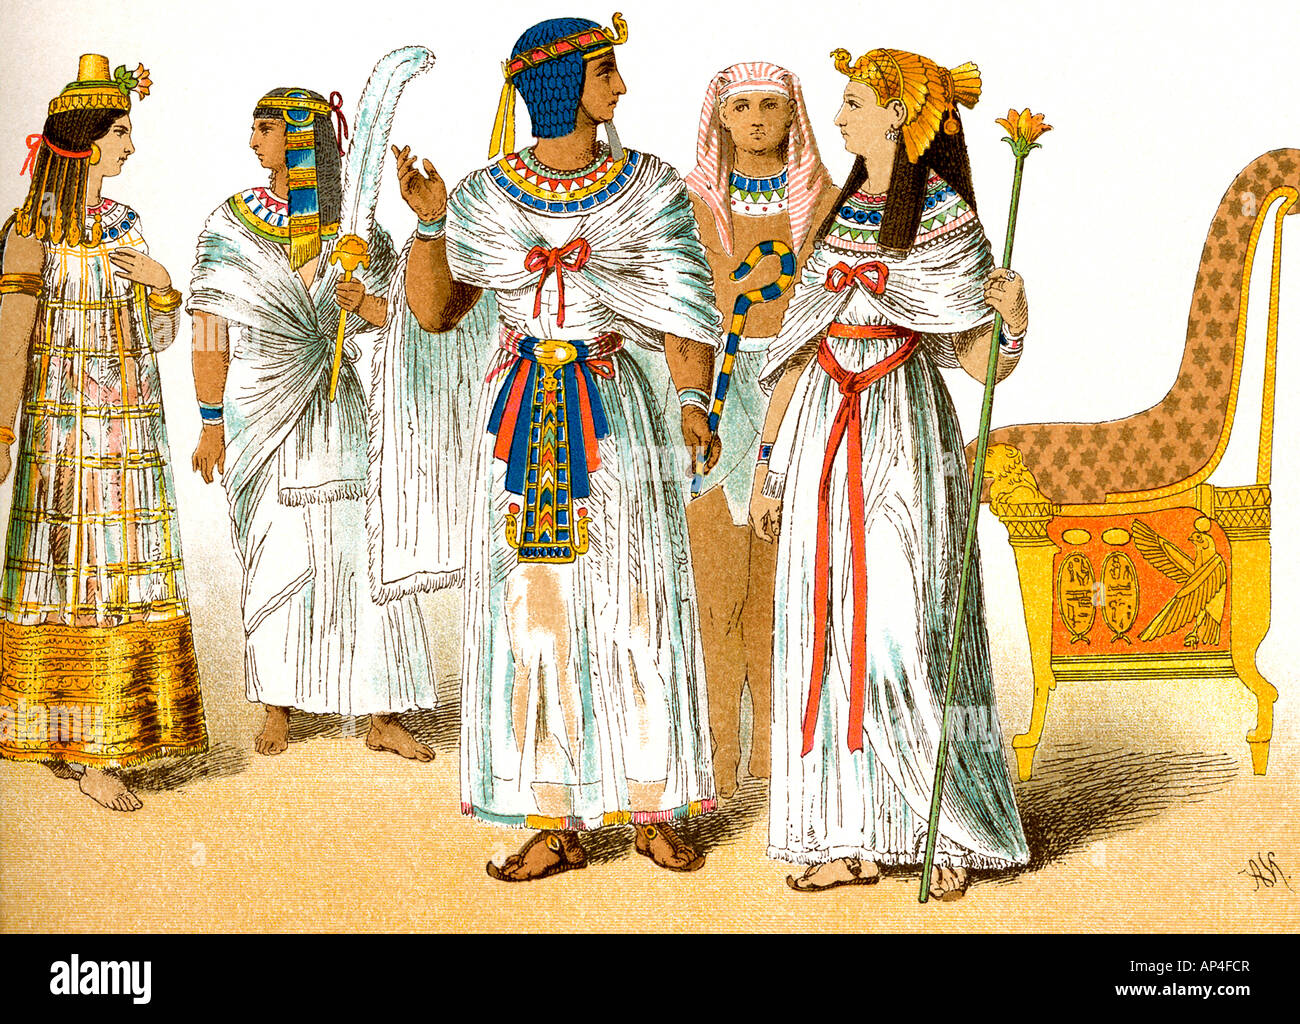 Ancient Egyptian Royals - Stock Image